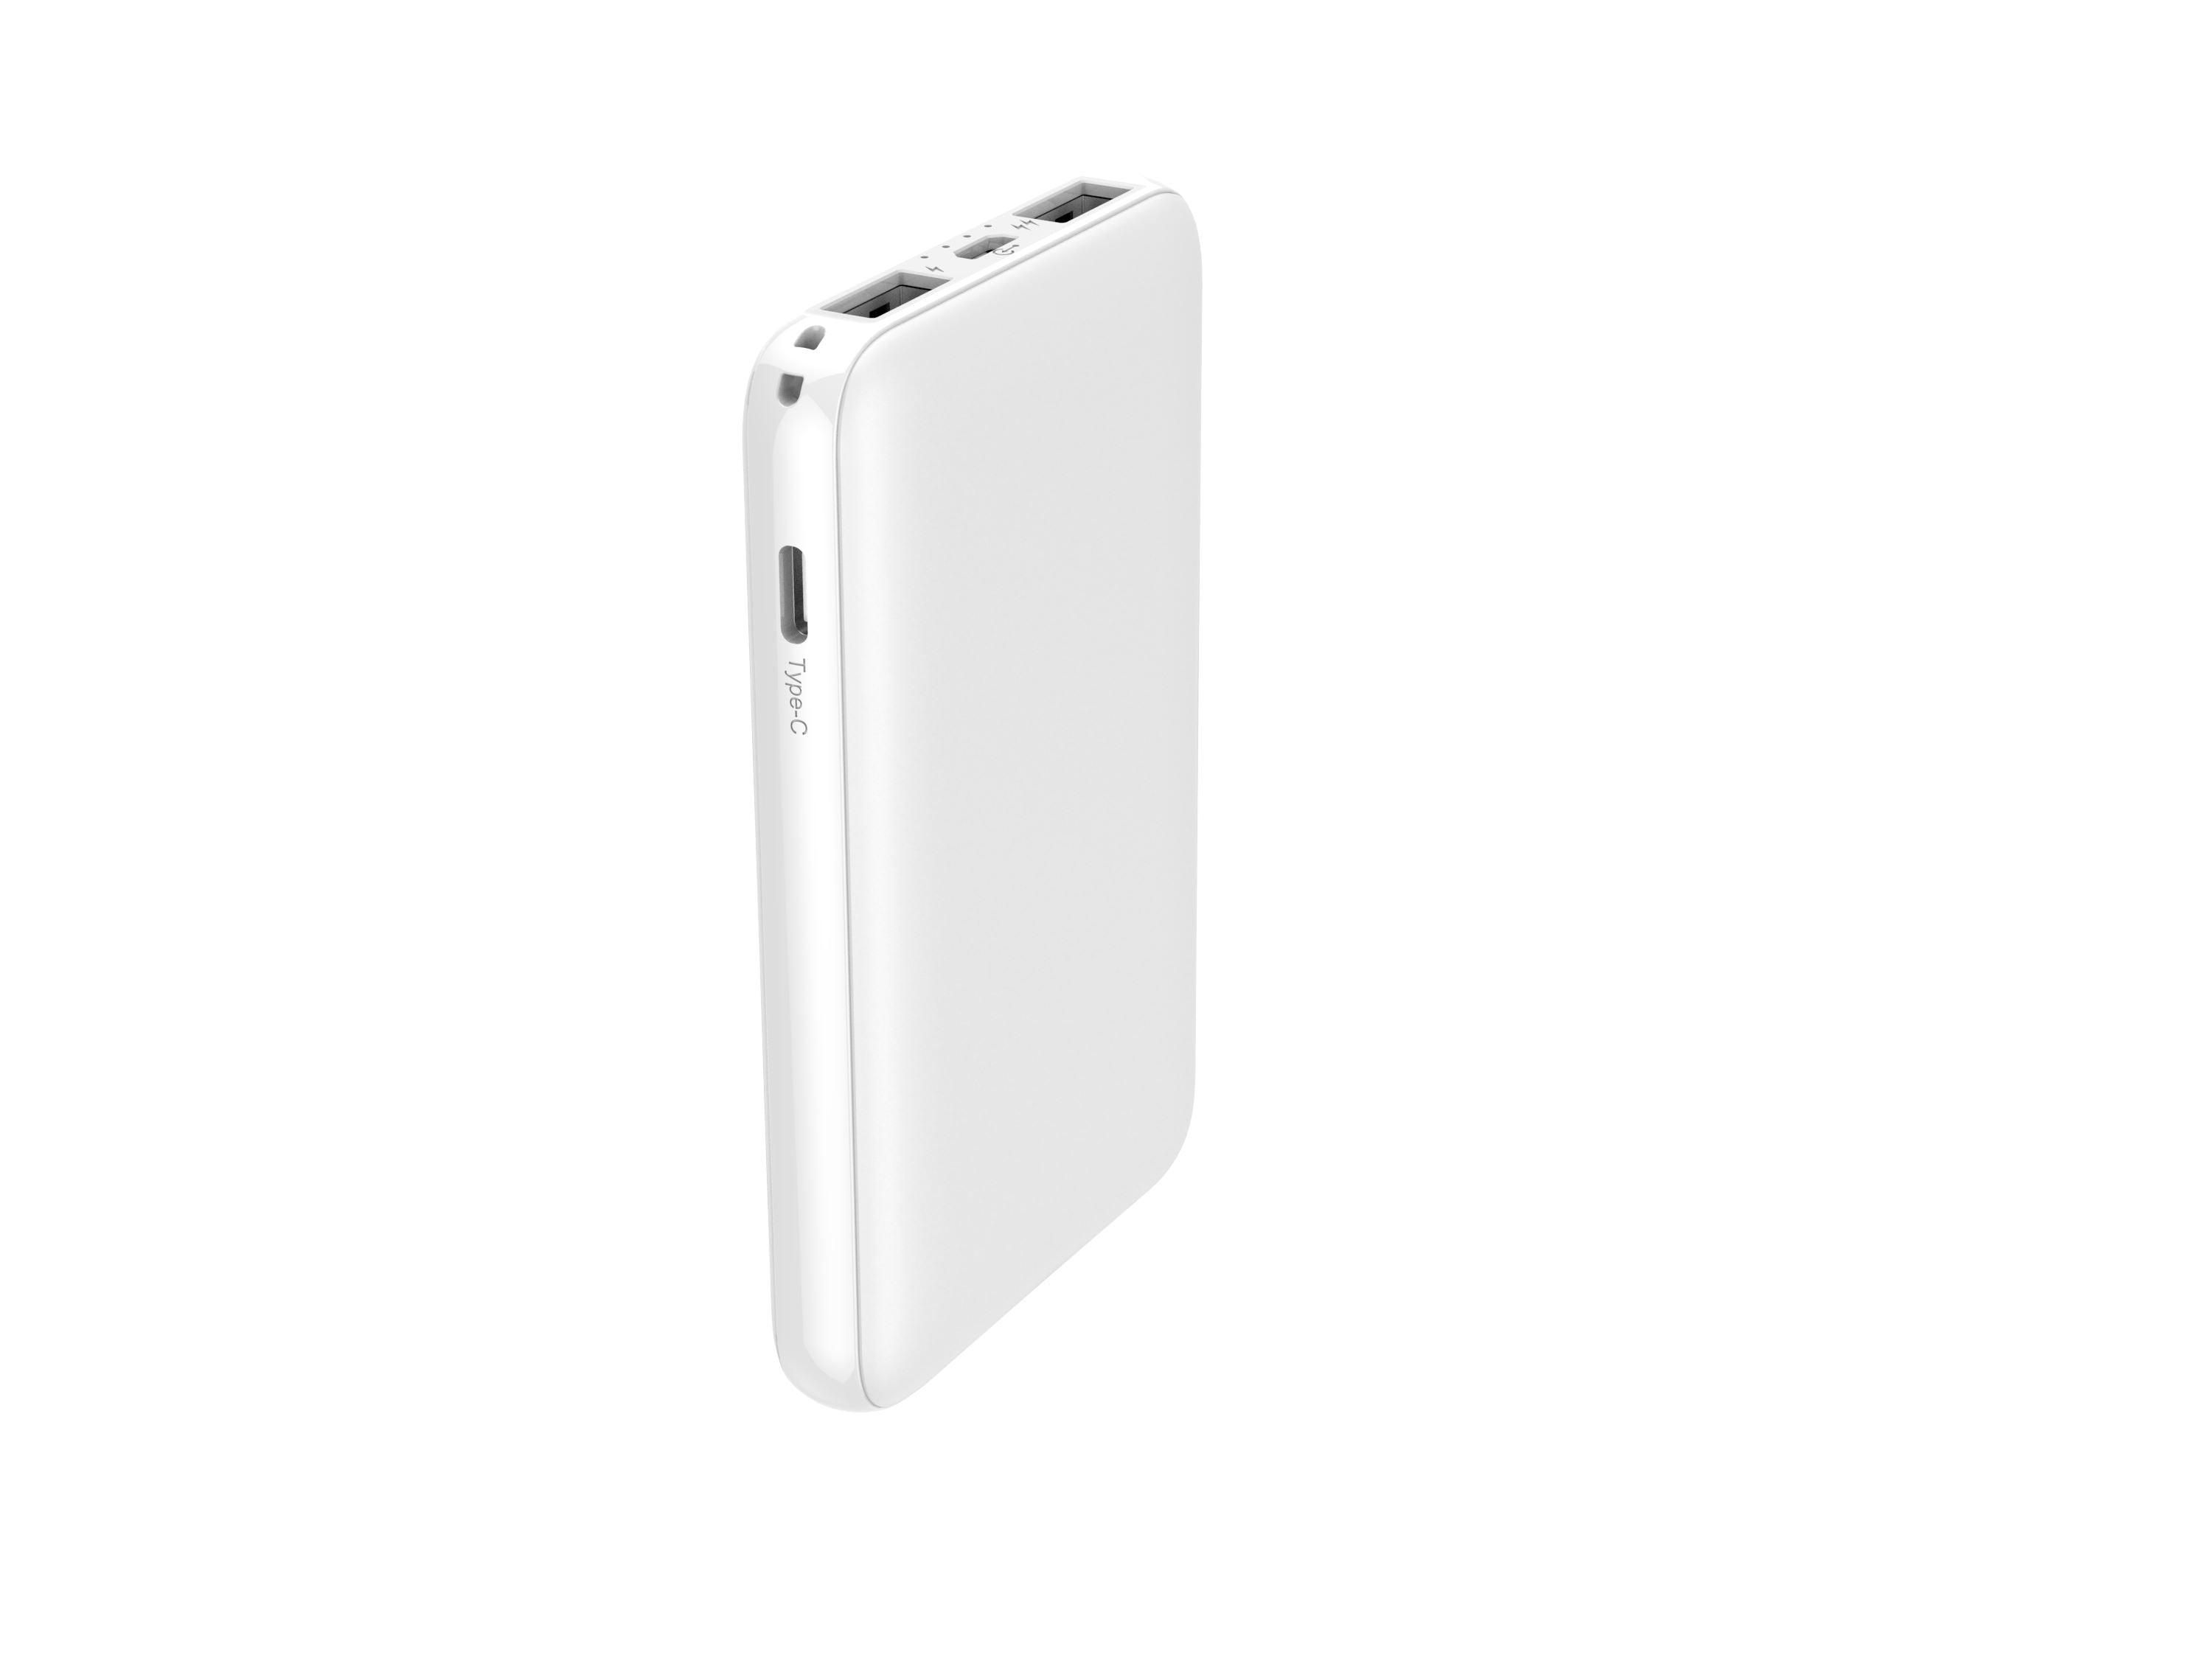 Trybe 5000mAh Dual USB-A + USB-C G61-C Power Bank - OwensAssetFund Gifts